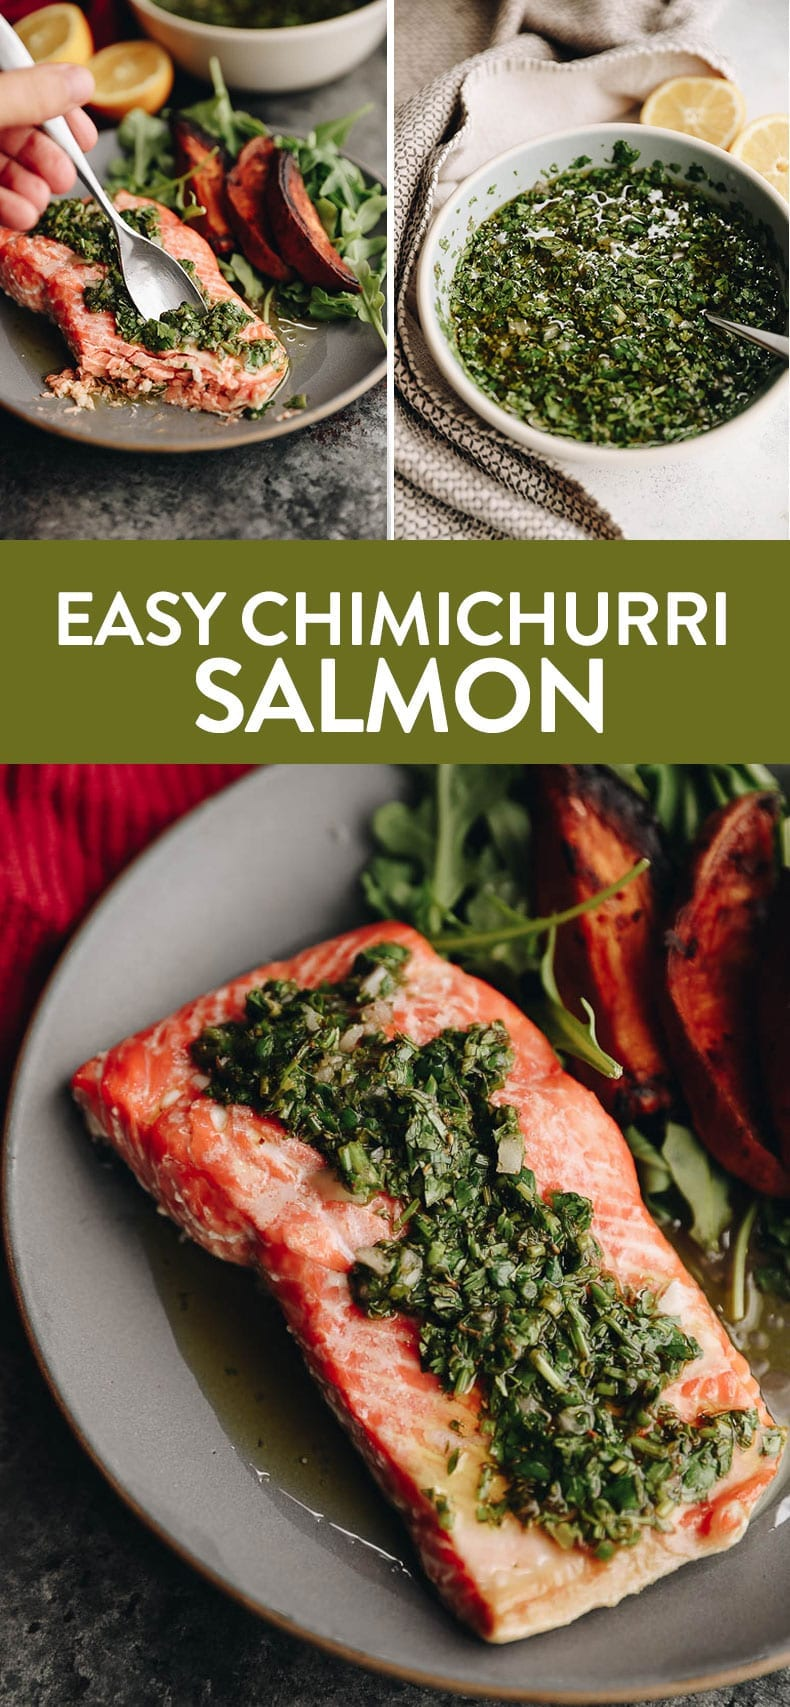 Easy and healthy this Baked Chimichurri Salmon is ready in 20 and perfect for a weeknight meal! #healthy #chimichurri #salmon